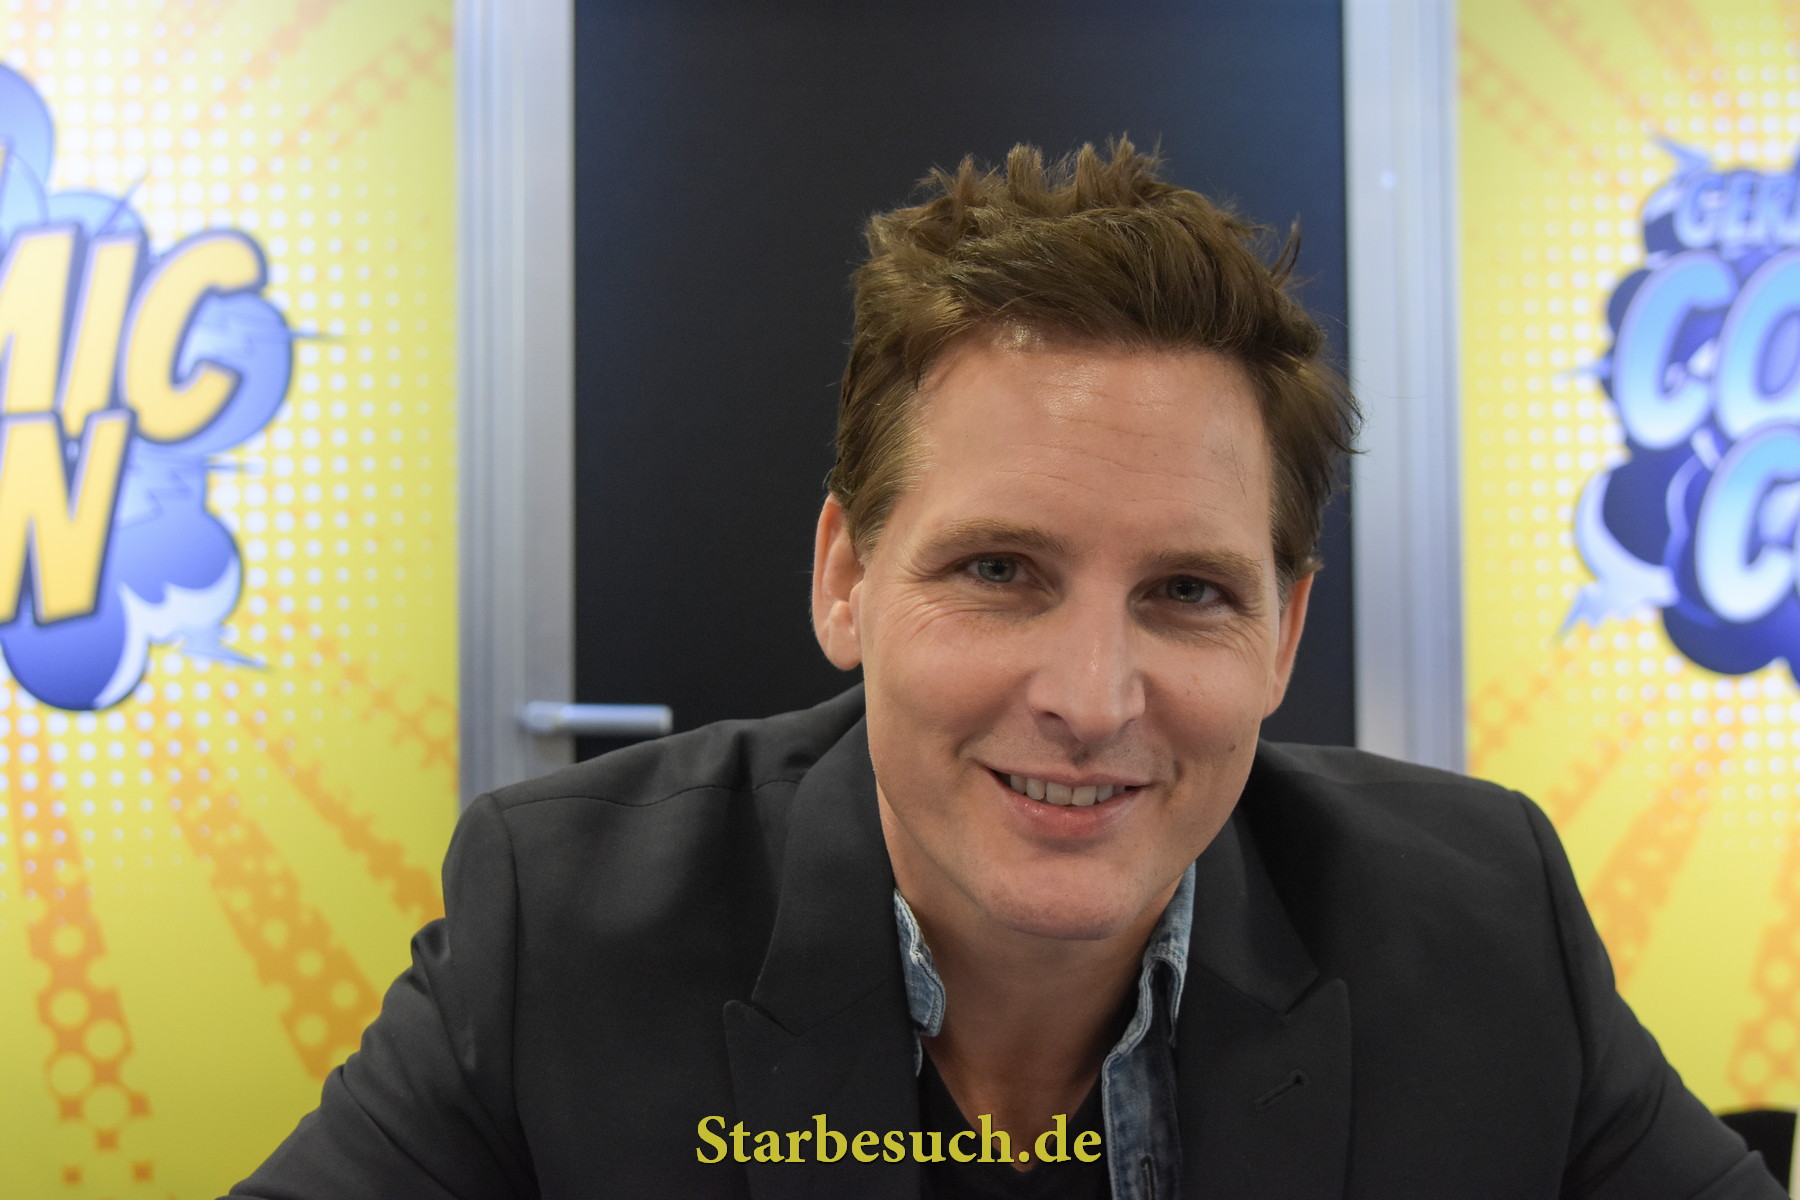 Dortmund, Germany - December 9th 2017: US Actor Peter Facinelli (* 1973, Twilight Saga, Supergirl, American Odyssey, Glee) at German Comic Con Dortmund. More than 30 celebrities attended the event to meet their fans, sign autographs and do photoshoots